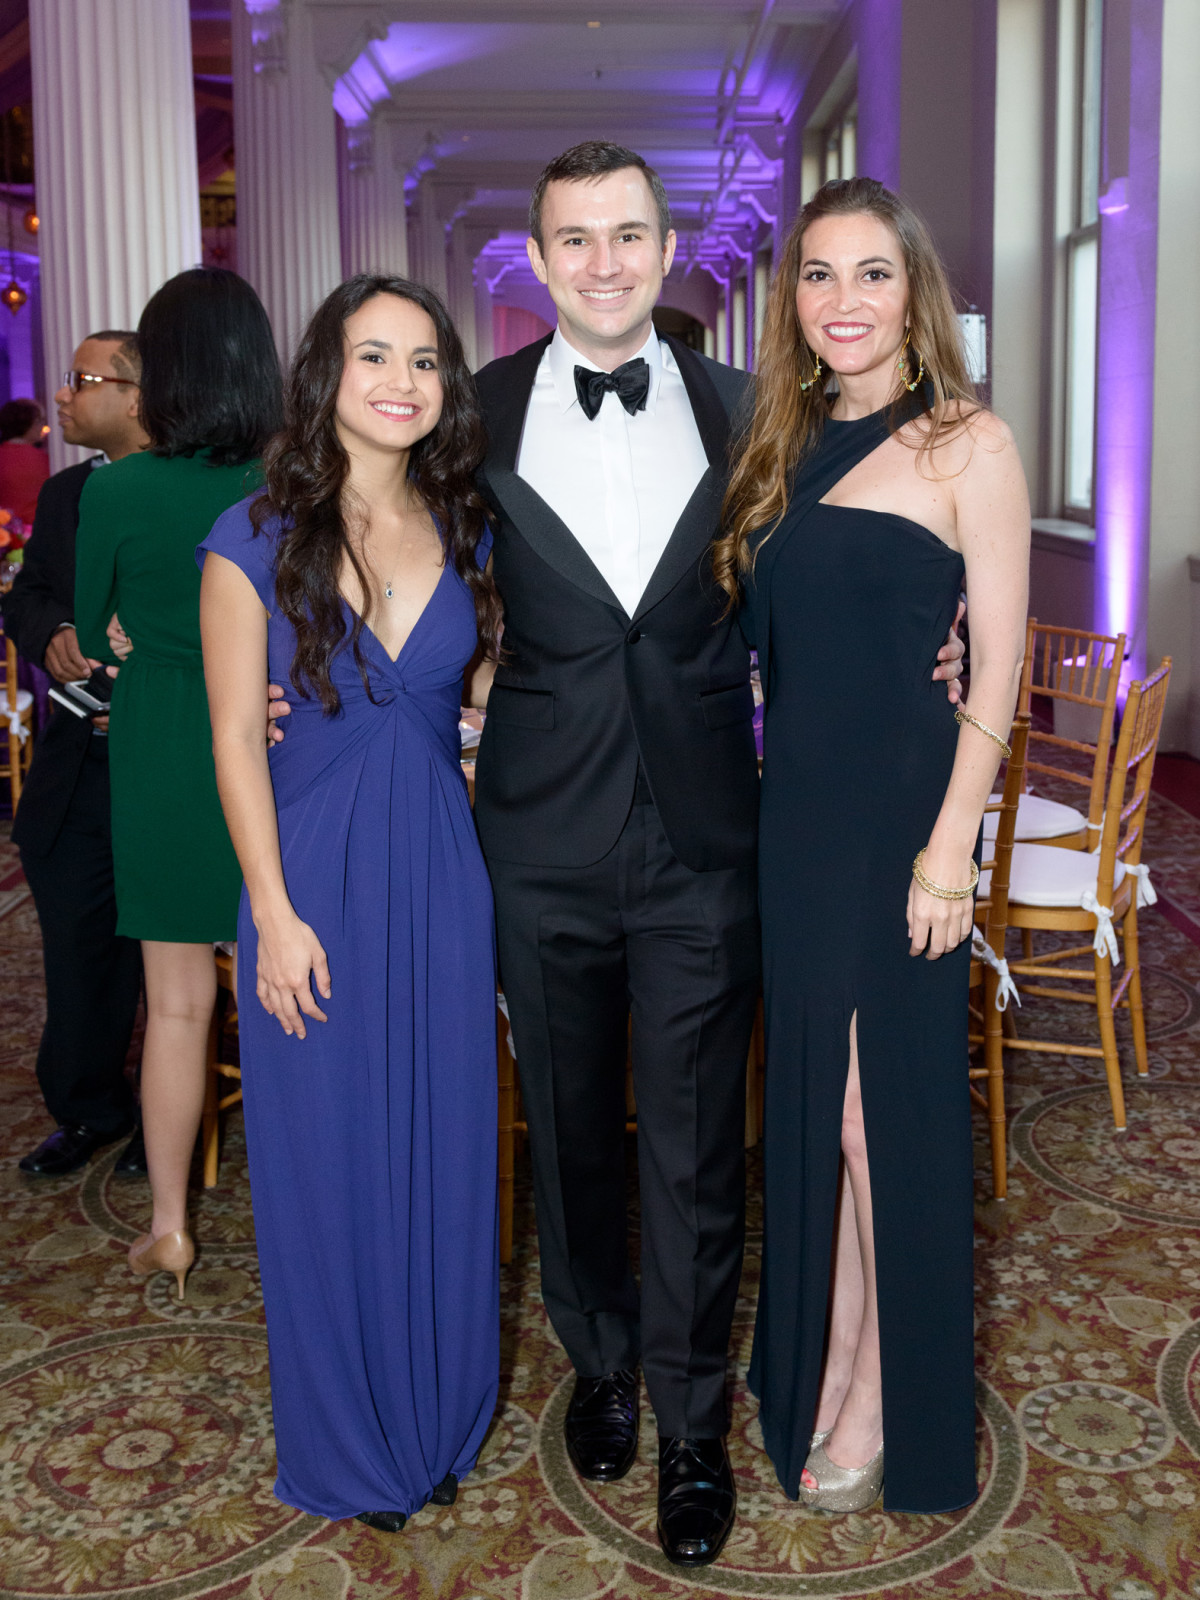 SPA gala, April 2016, Estefania Llanos, Charles Fisher, Bethany Heep